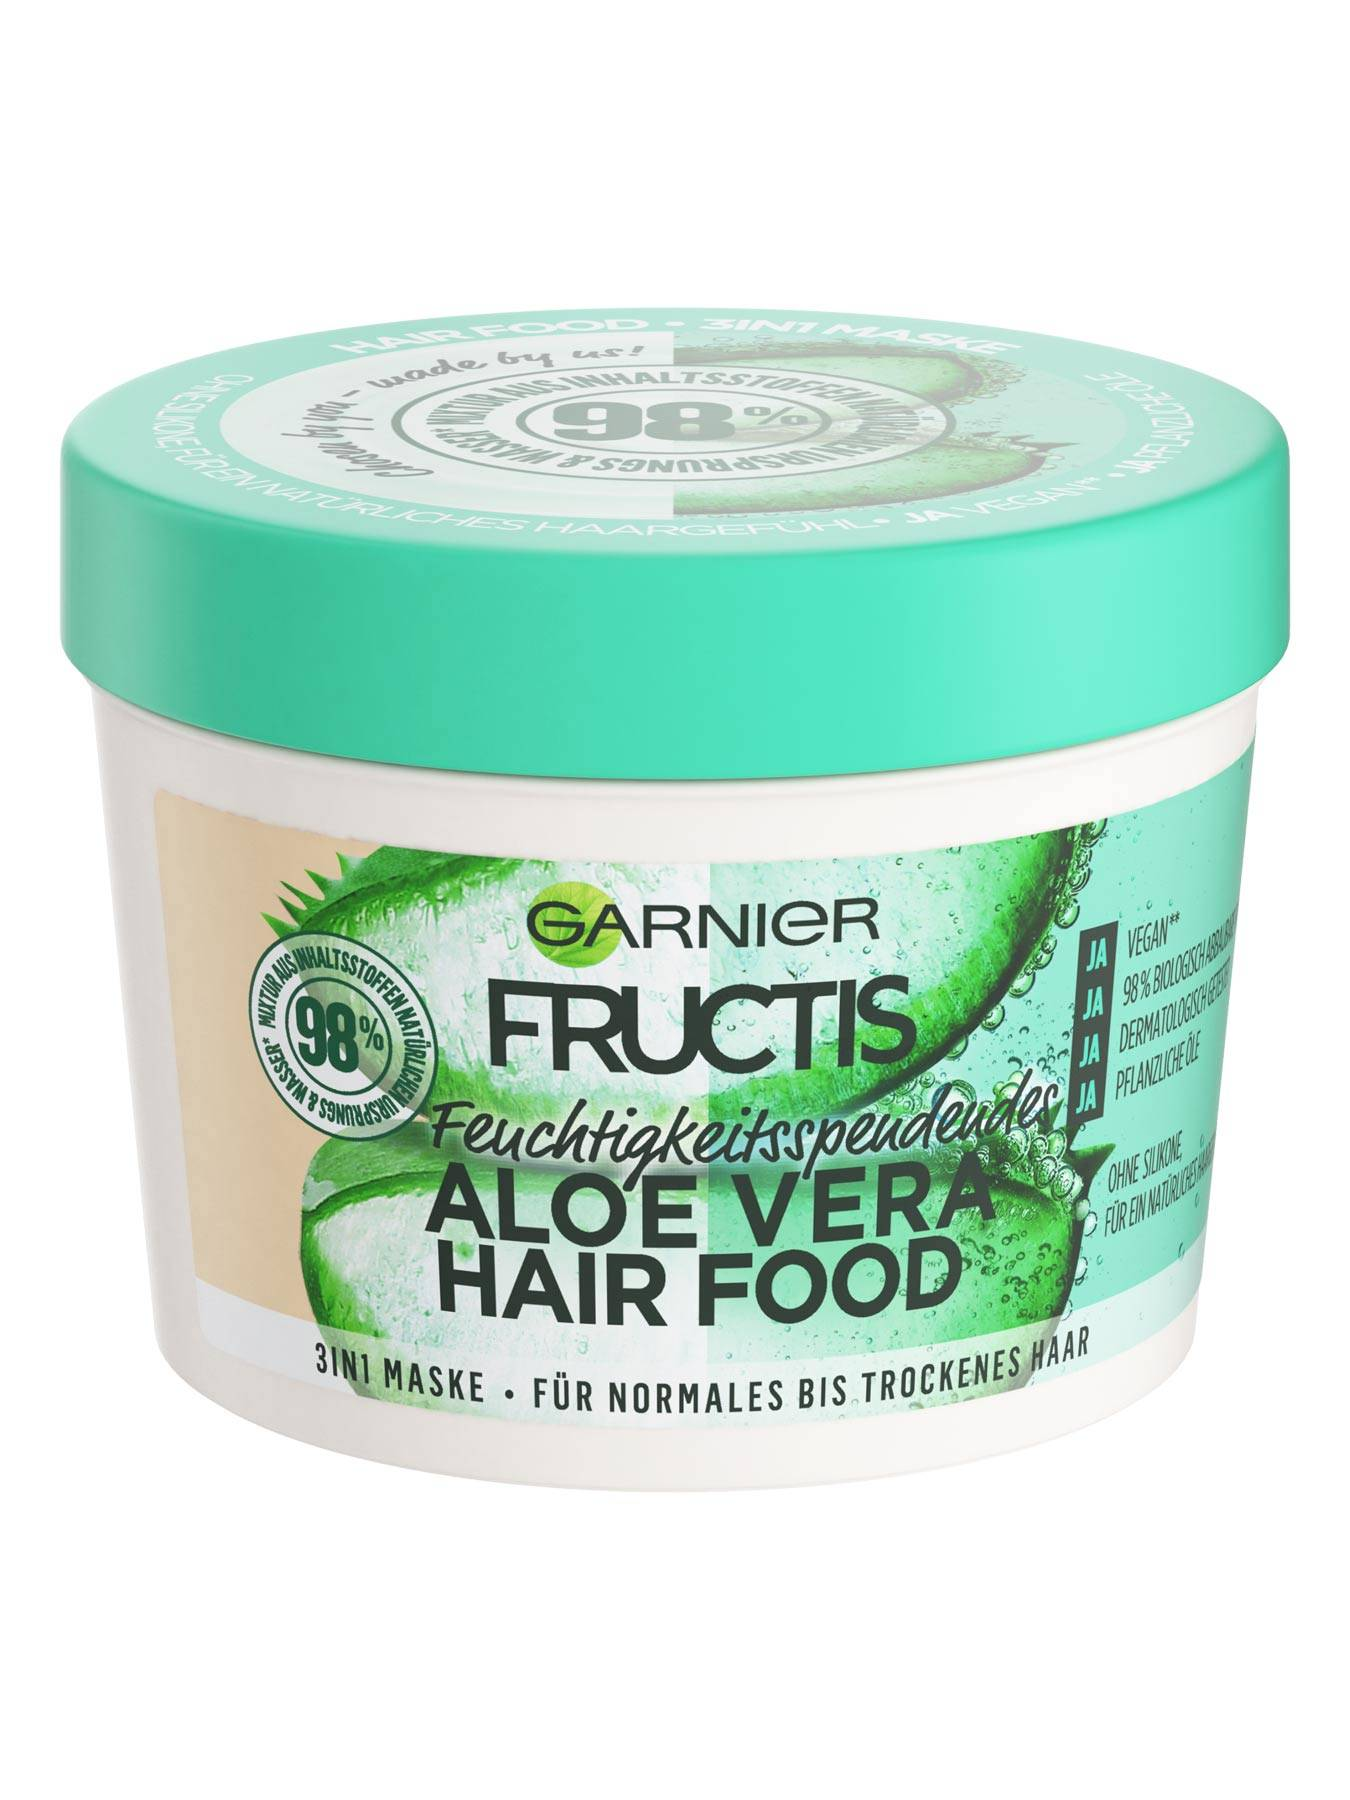 3in1-Maske-Fructis-Aloe-Vera-Hair-Food-390ml-Vorderseite-Garnier-Deutschland-gross